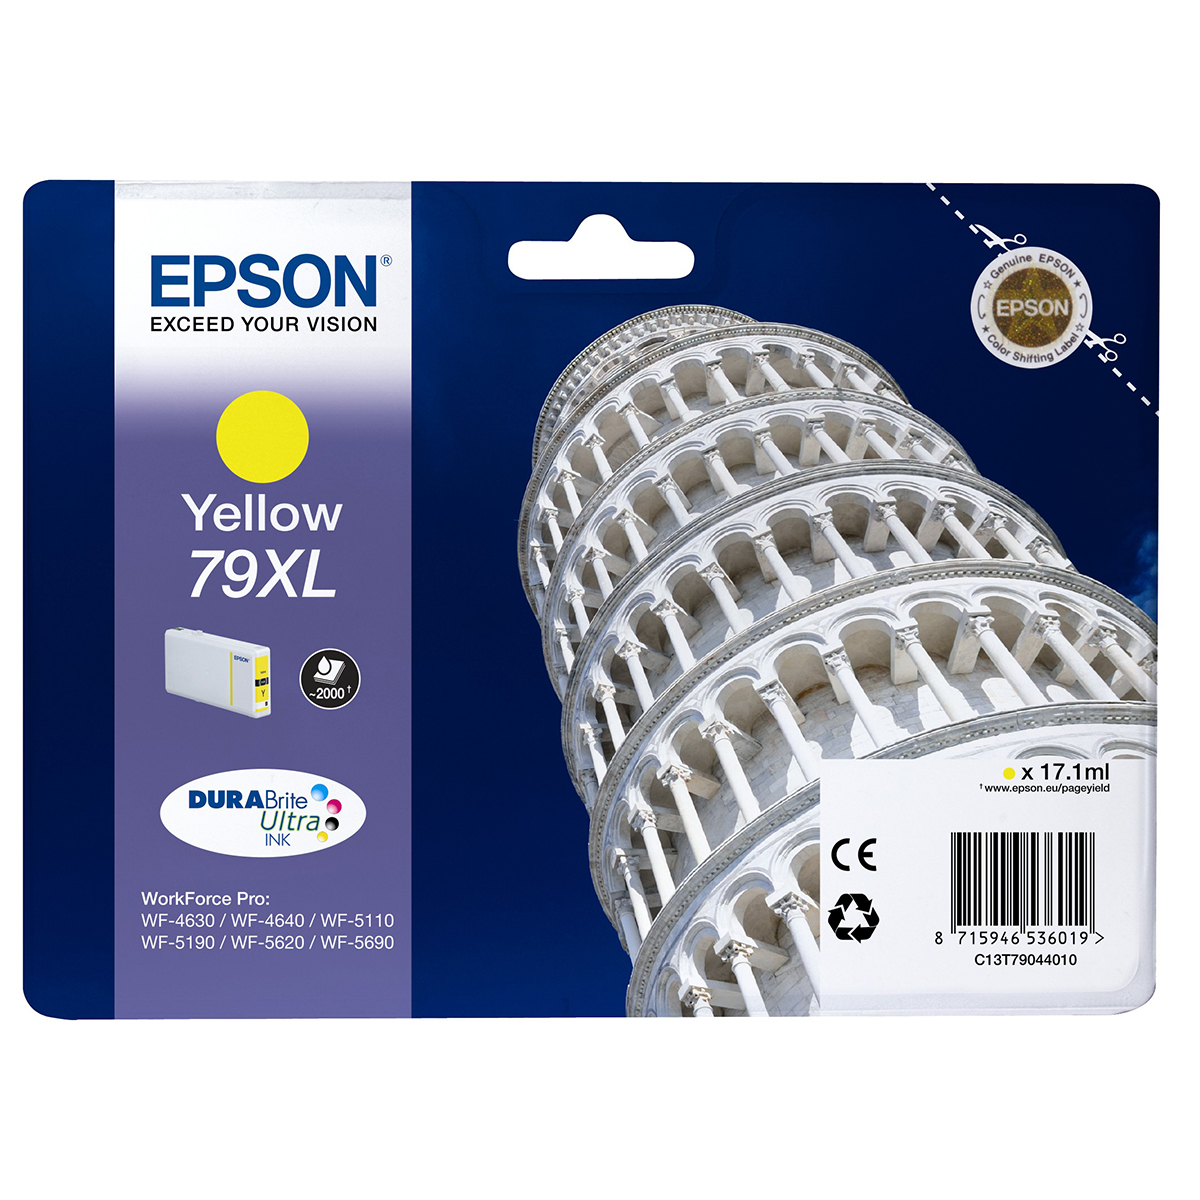 Epson 79XL Ink Cartridge Yellow